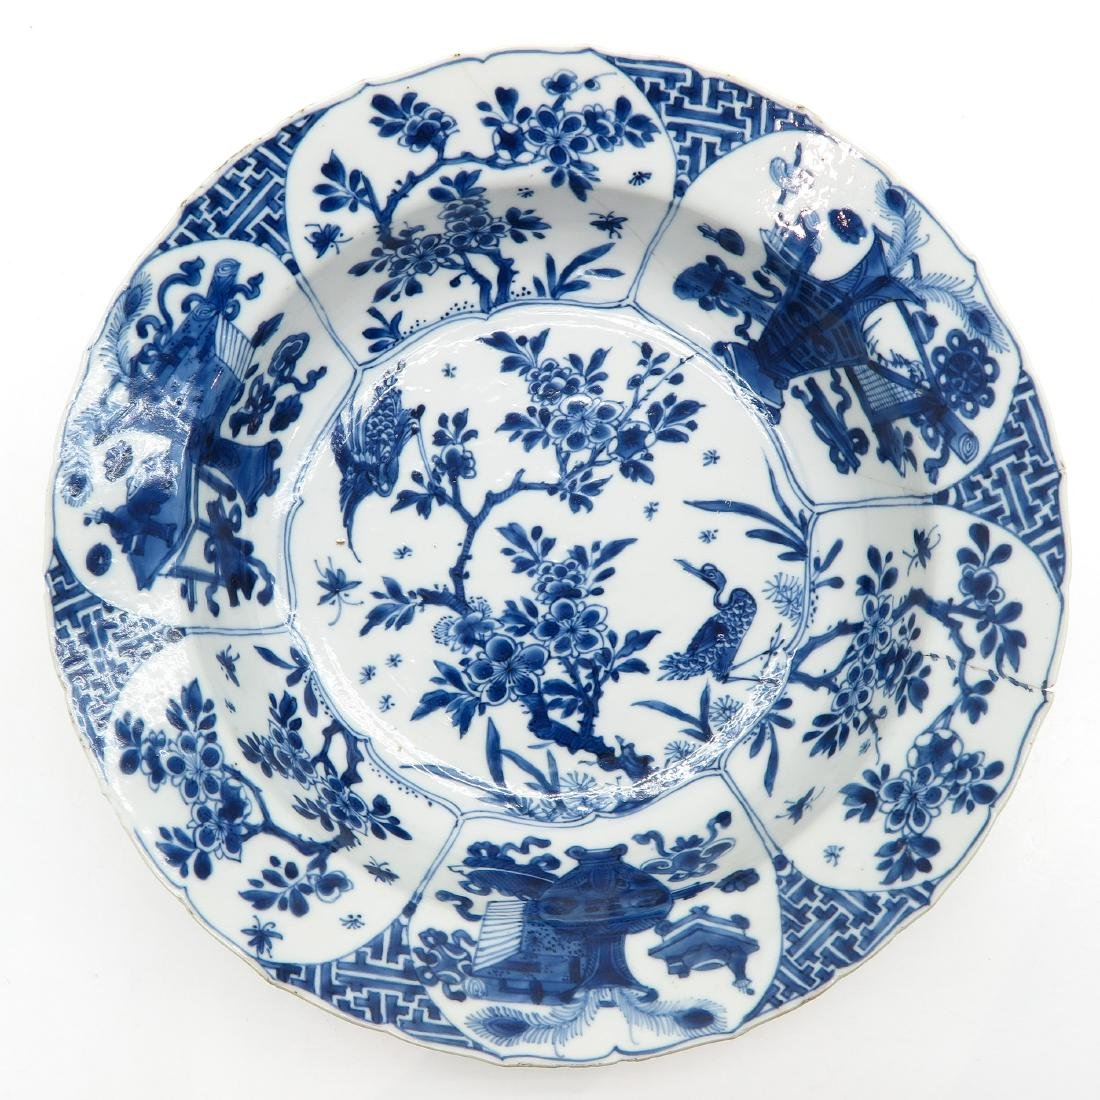 Blue and White Decor Plate